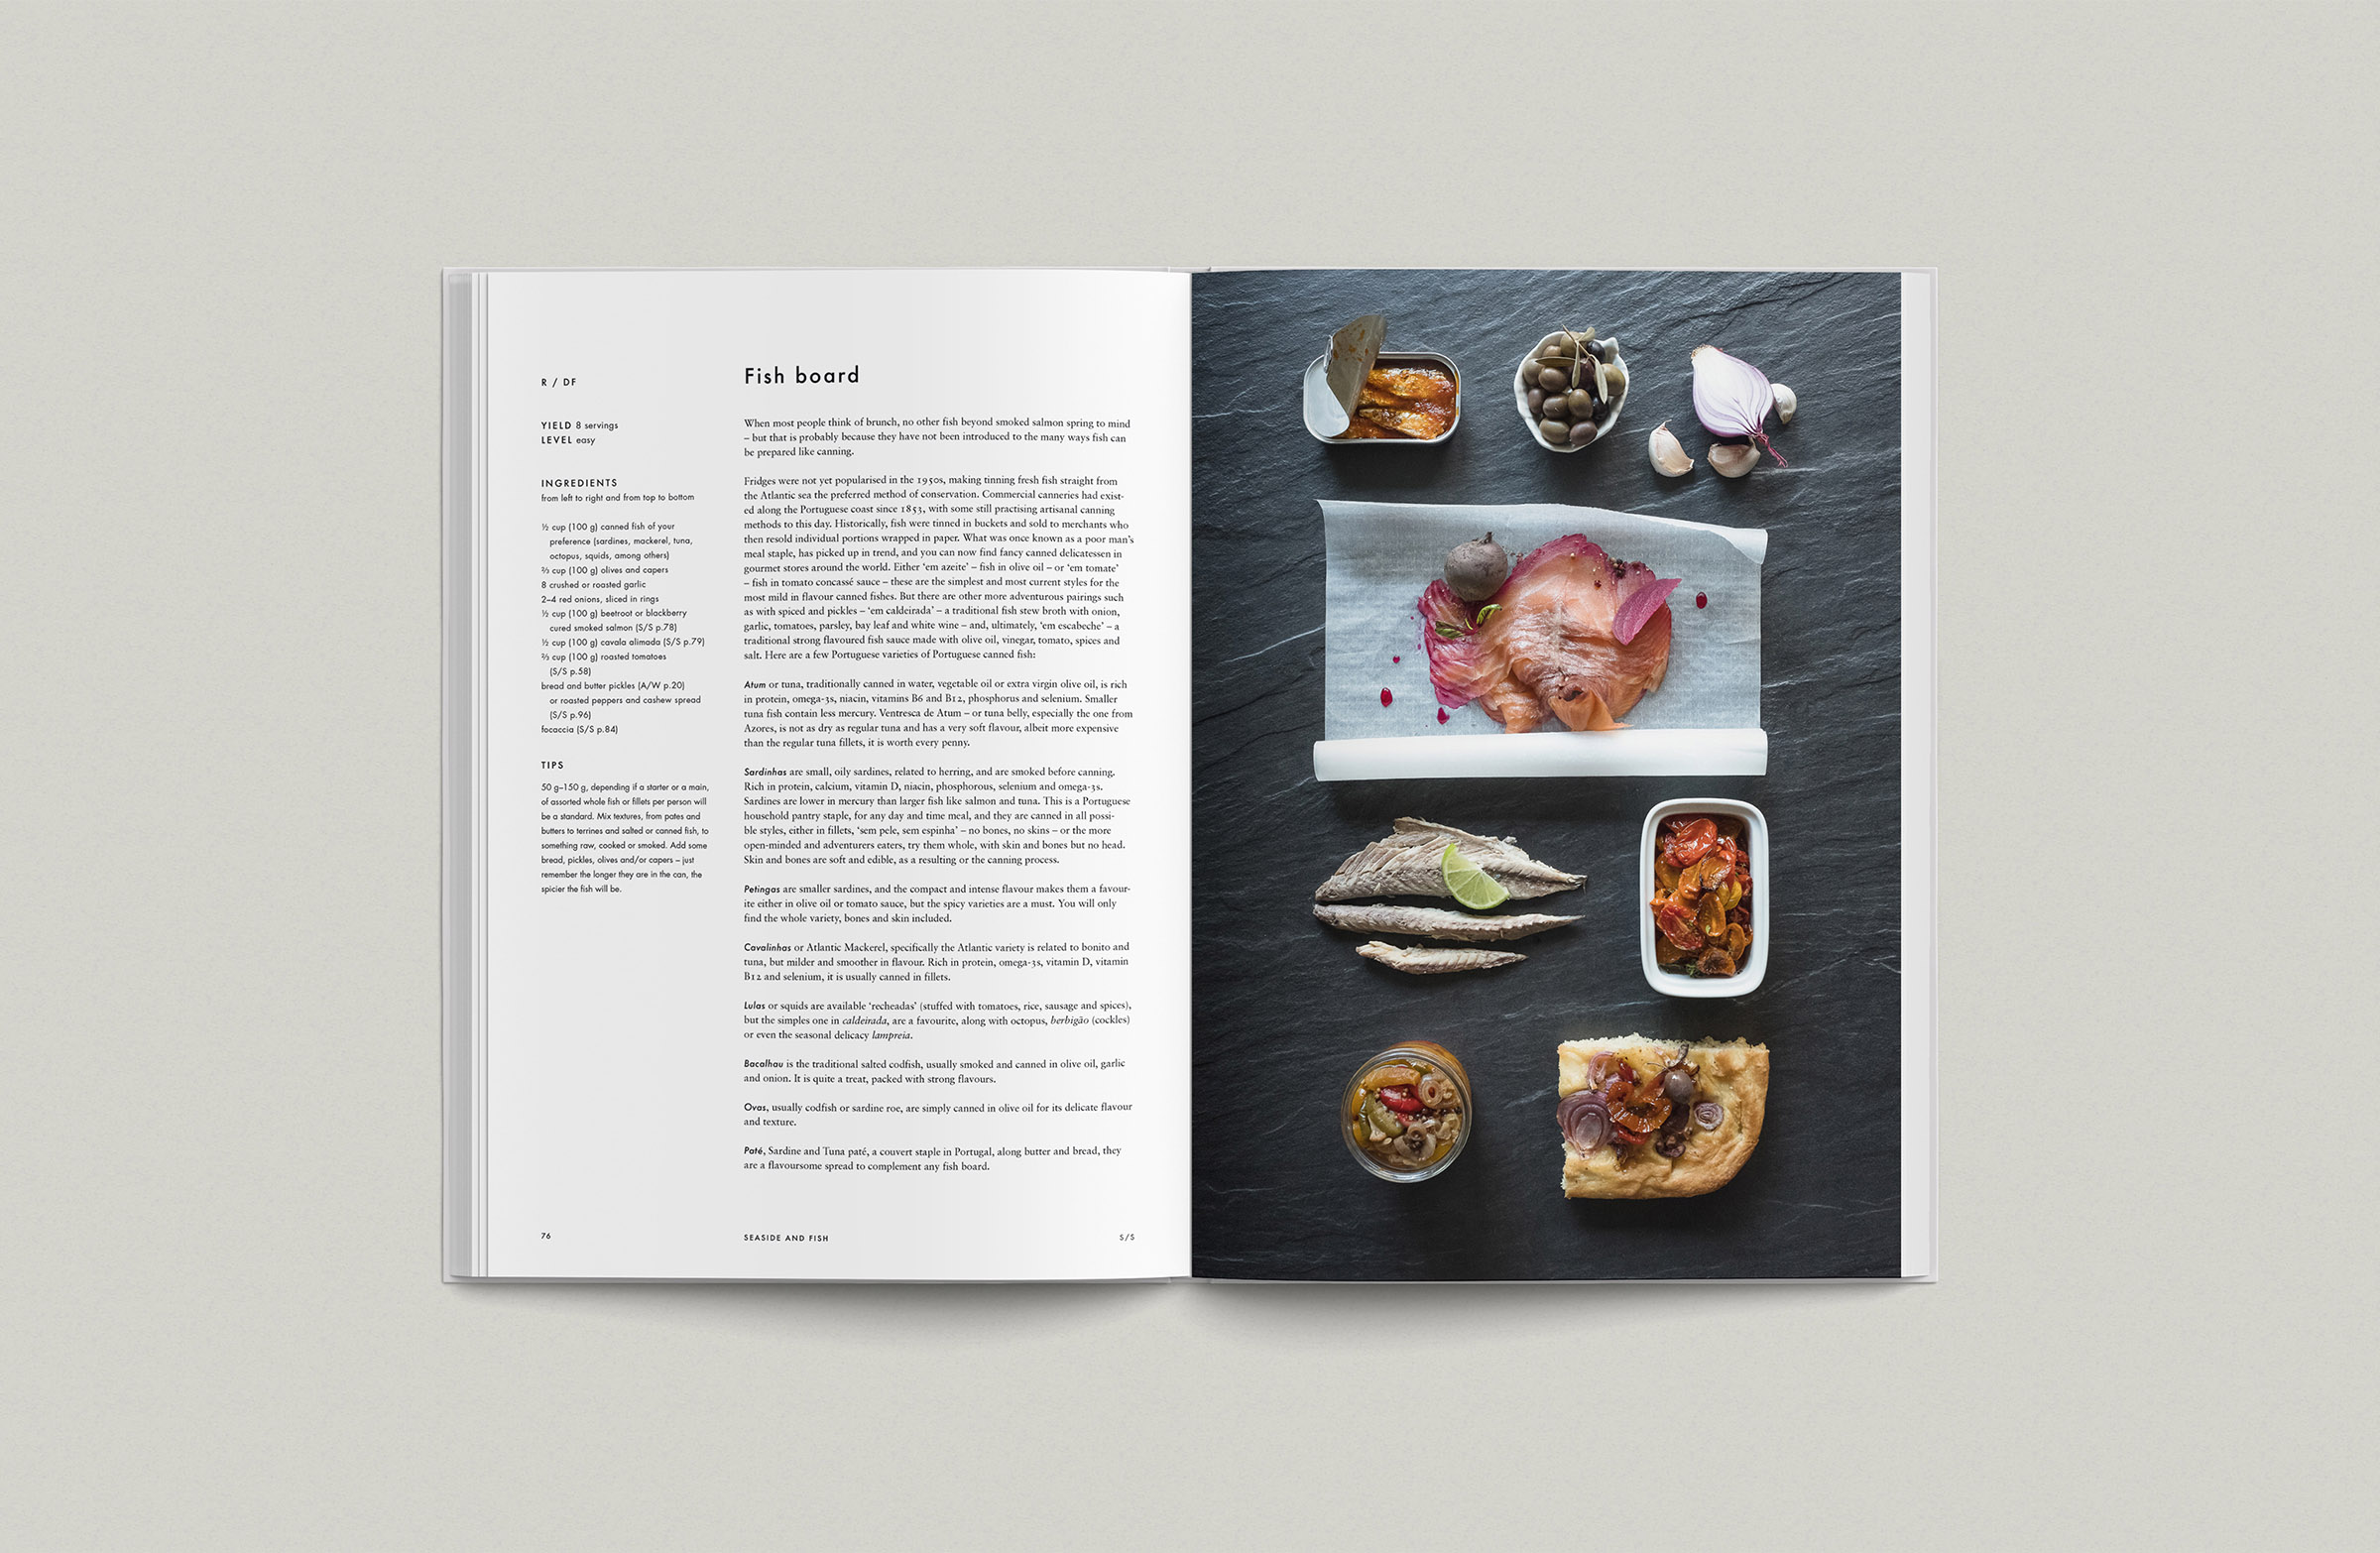 dailybrunch_rosaetal_book_daniel-zachrisson_10.jpg